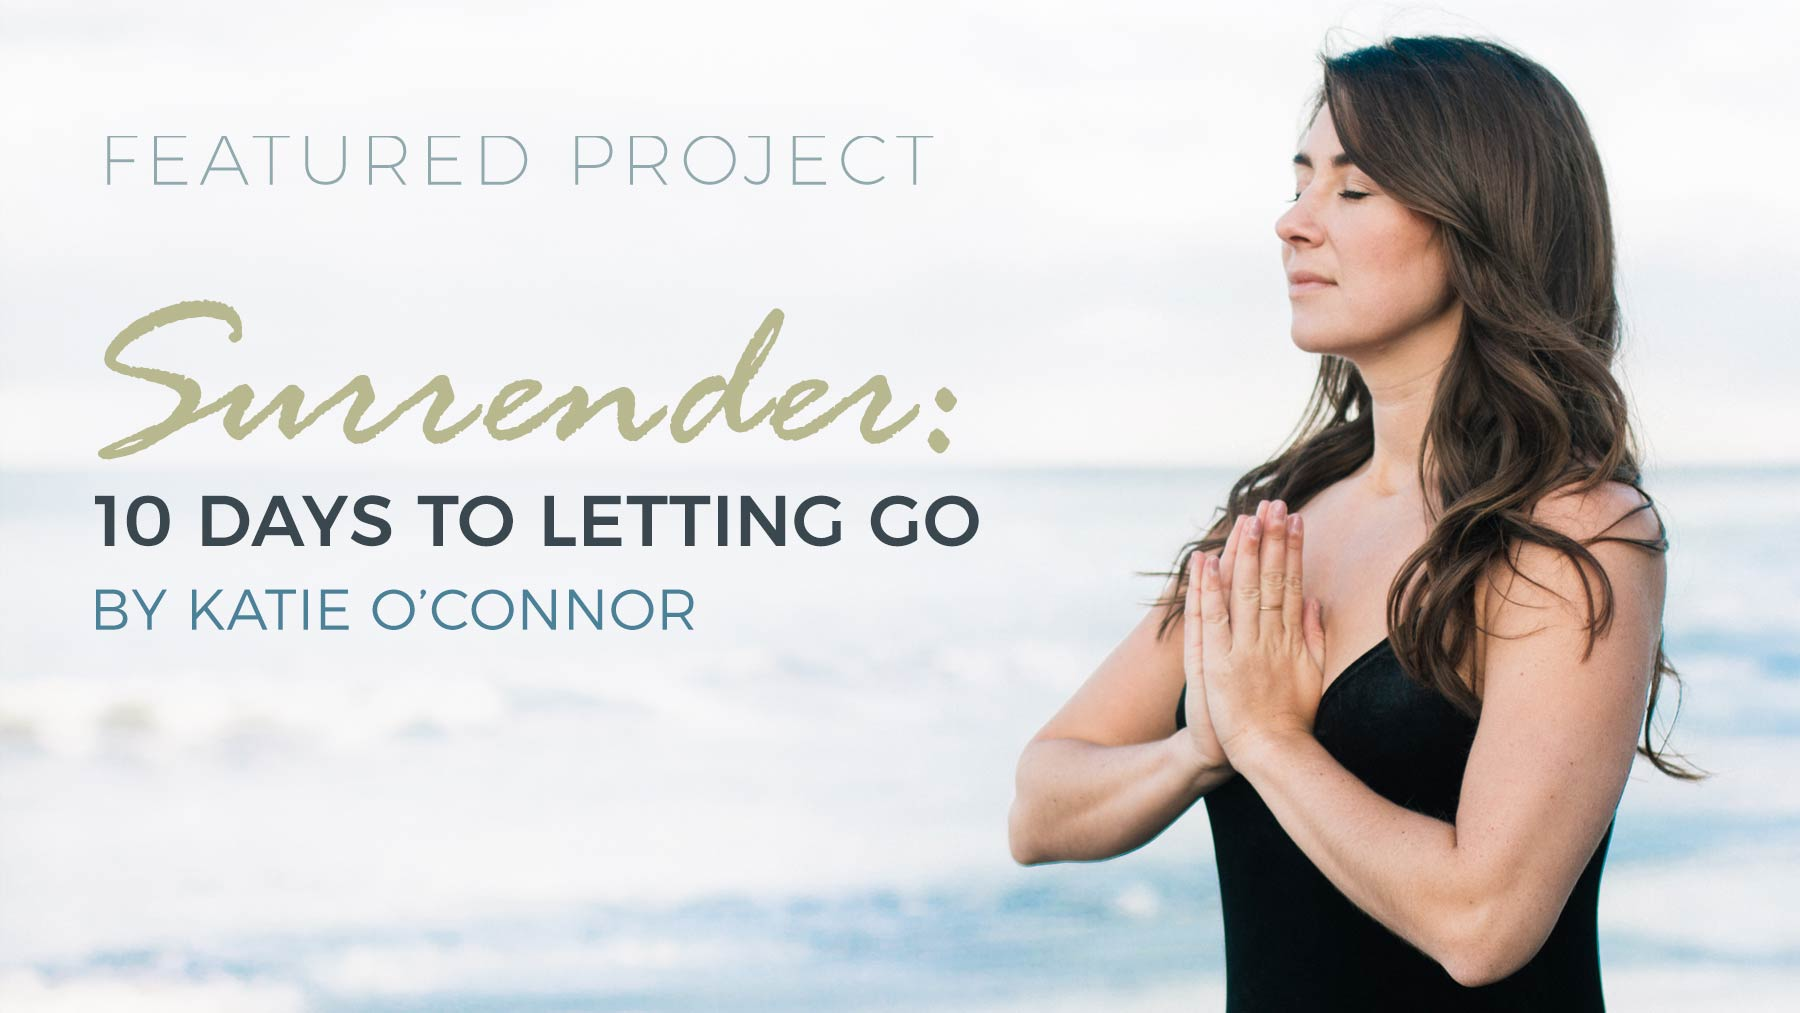 Featured Project - Surrender: 10 Days to Letting Go by Katie O'Connor